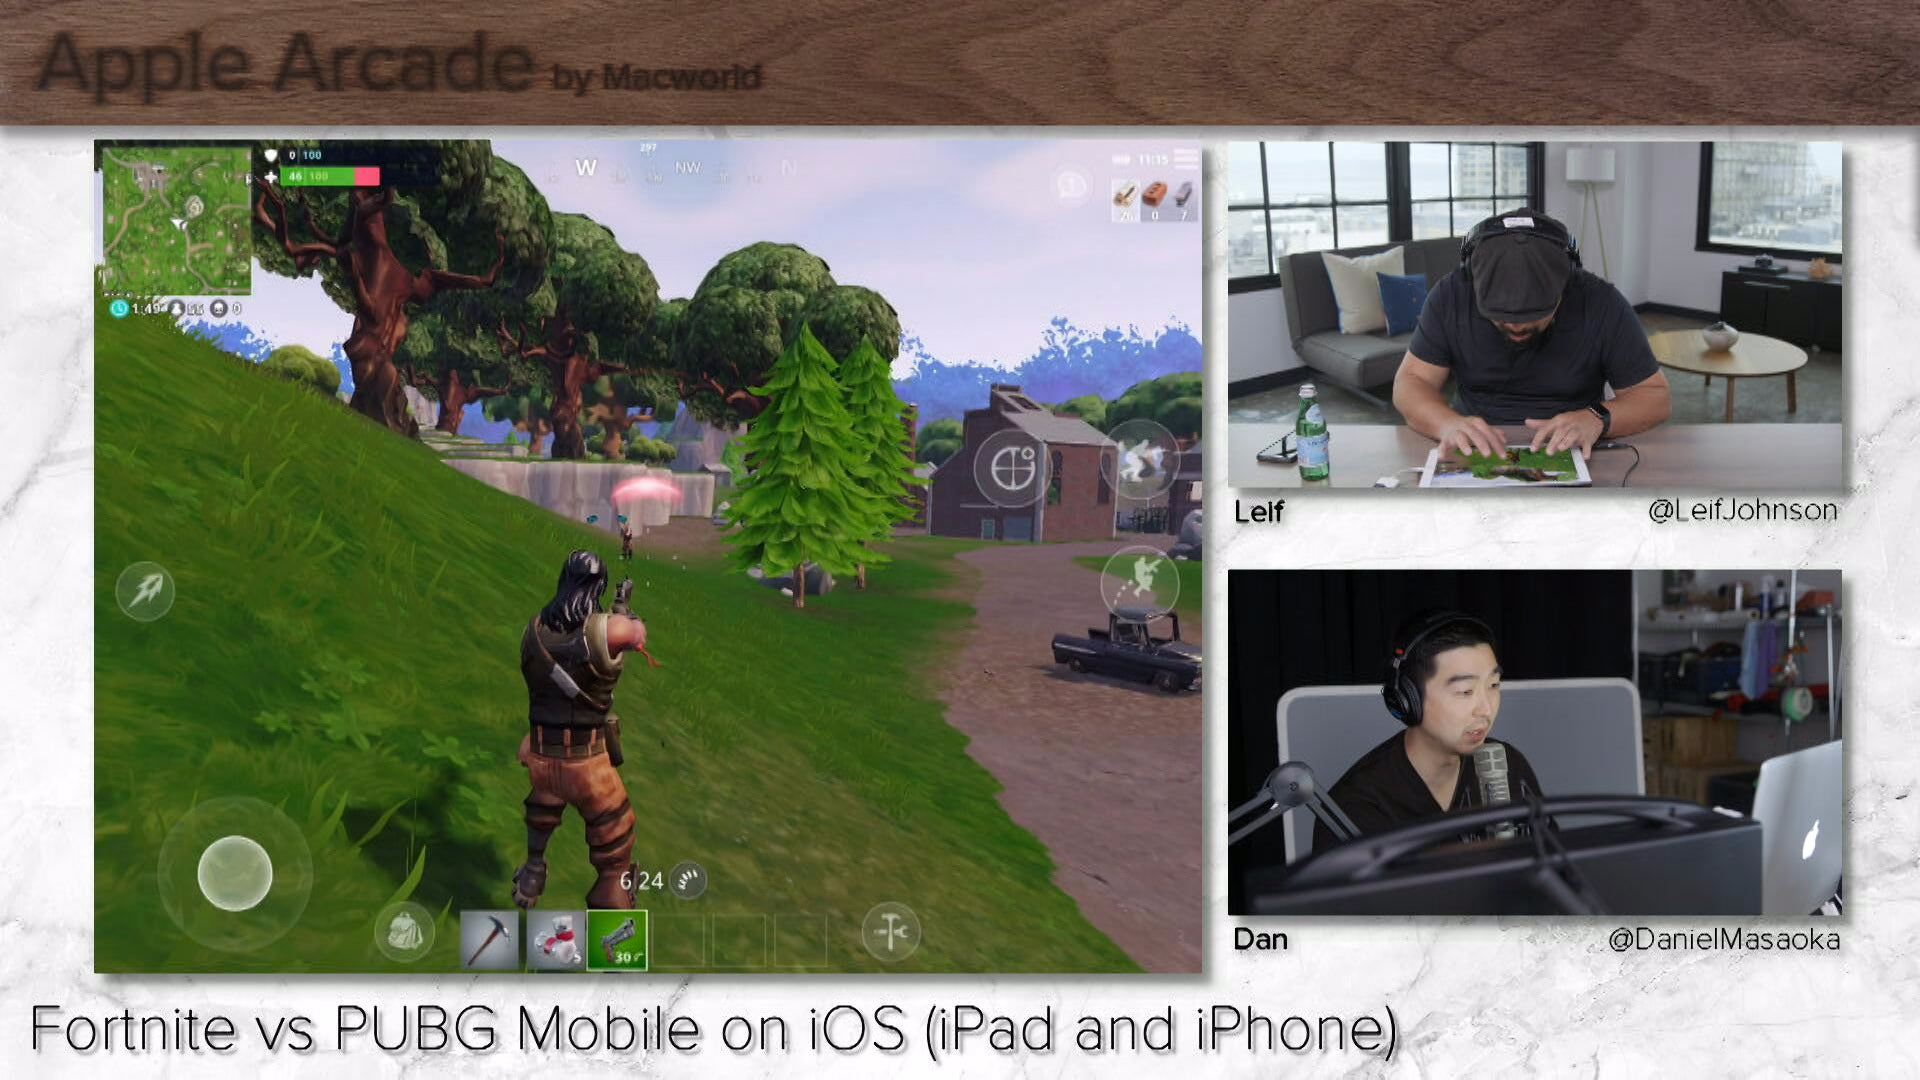 how well does the new 9 7 inch ipad handle games apple arcade episode 4 macworld - play fortnite mobile on mac